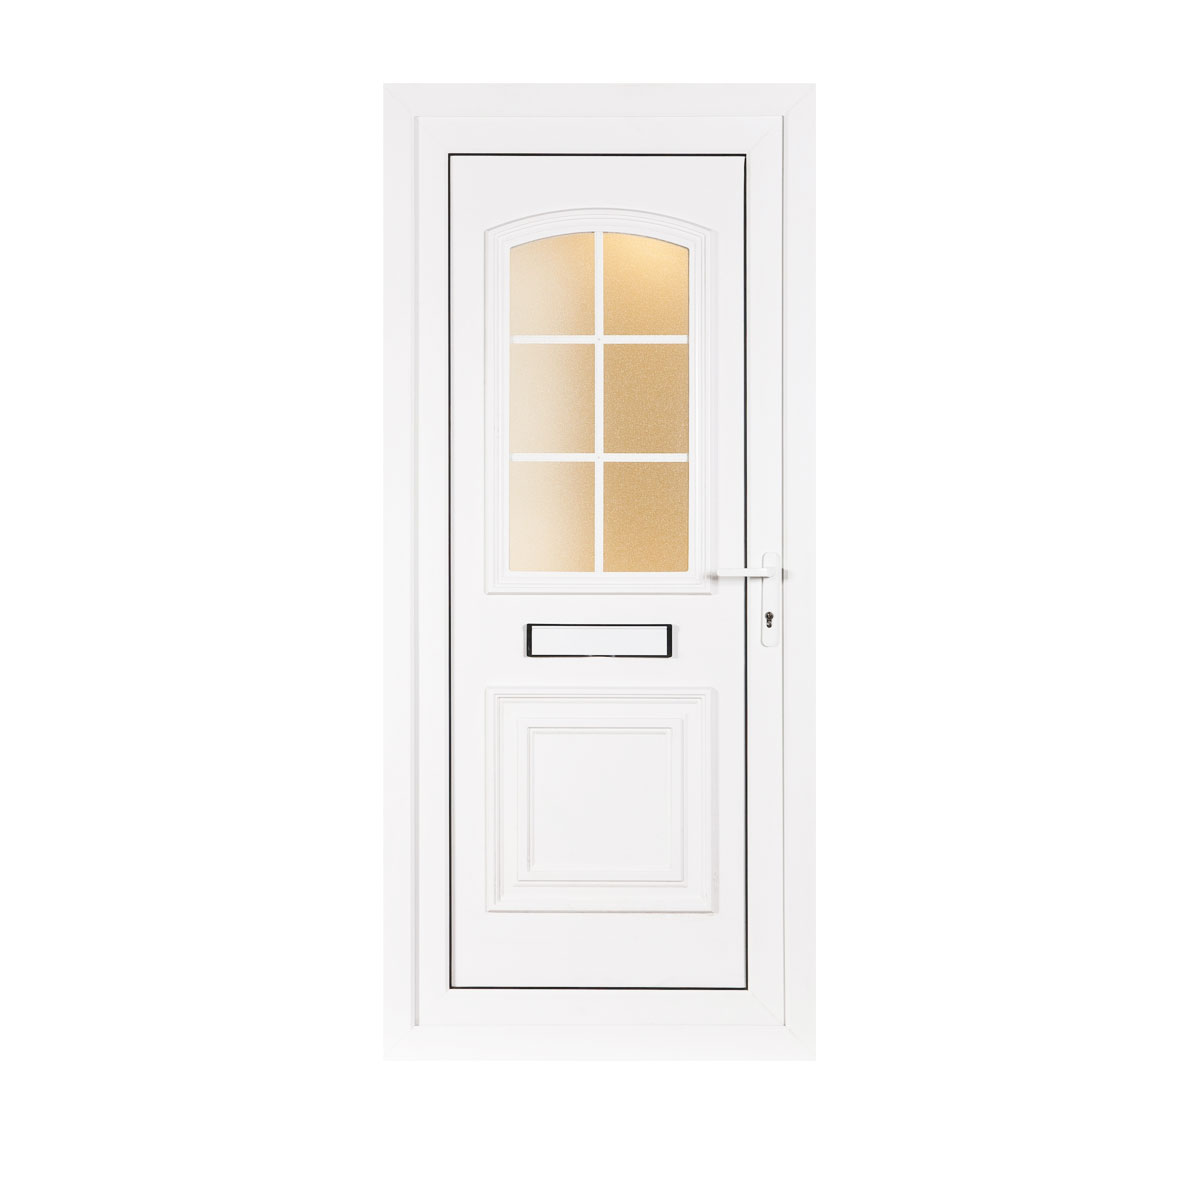 Maulden upvc front door left hand hung flying doors for Front and back doors